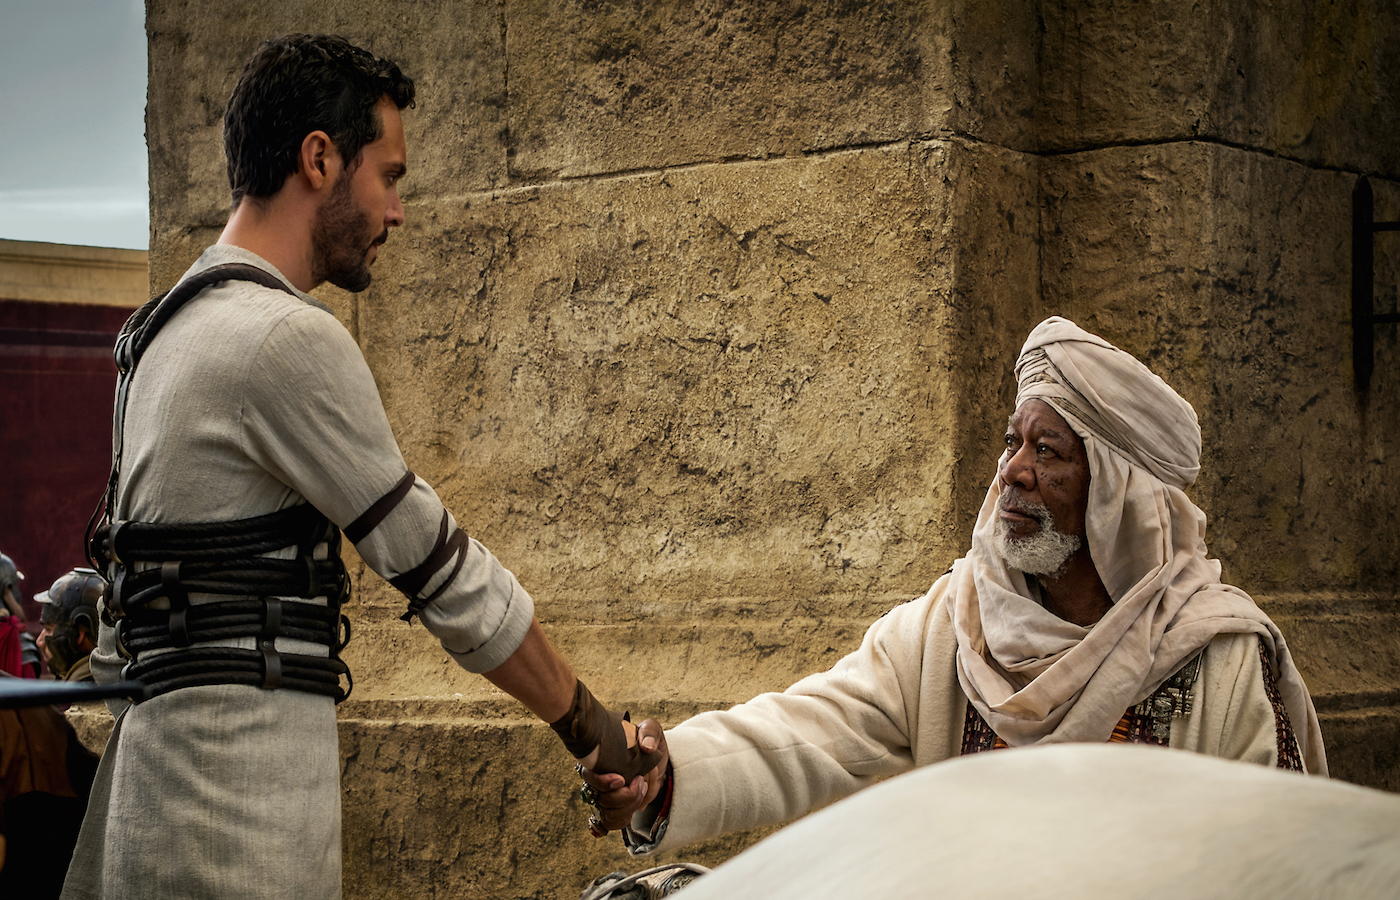 ben-hur-jack-huston-morgan-freeman1.jpg